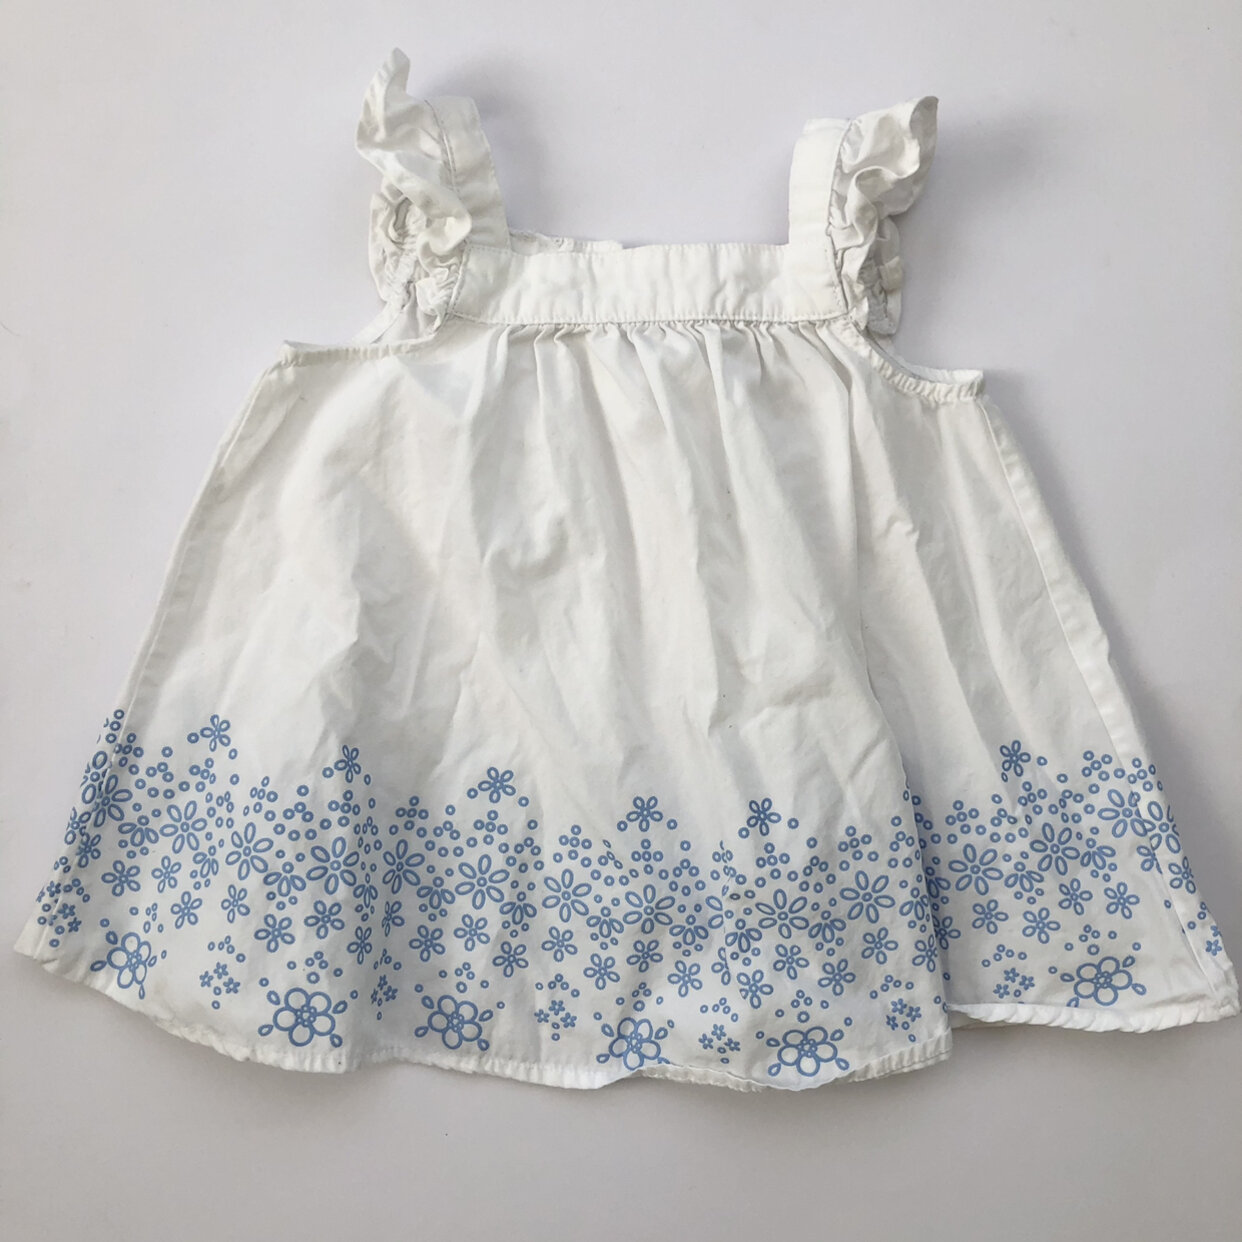 Macy S White And Blue Dress With Lace Pattern Detail 24 Mo